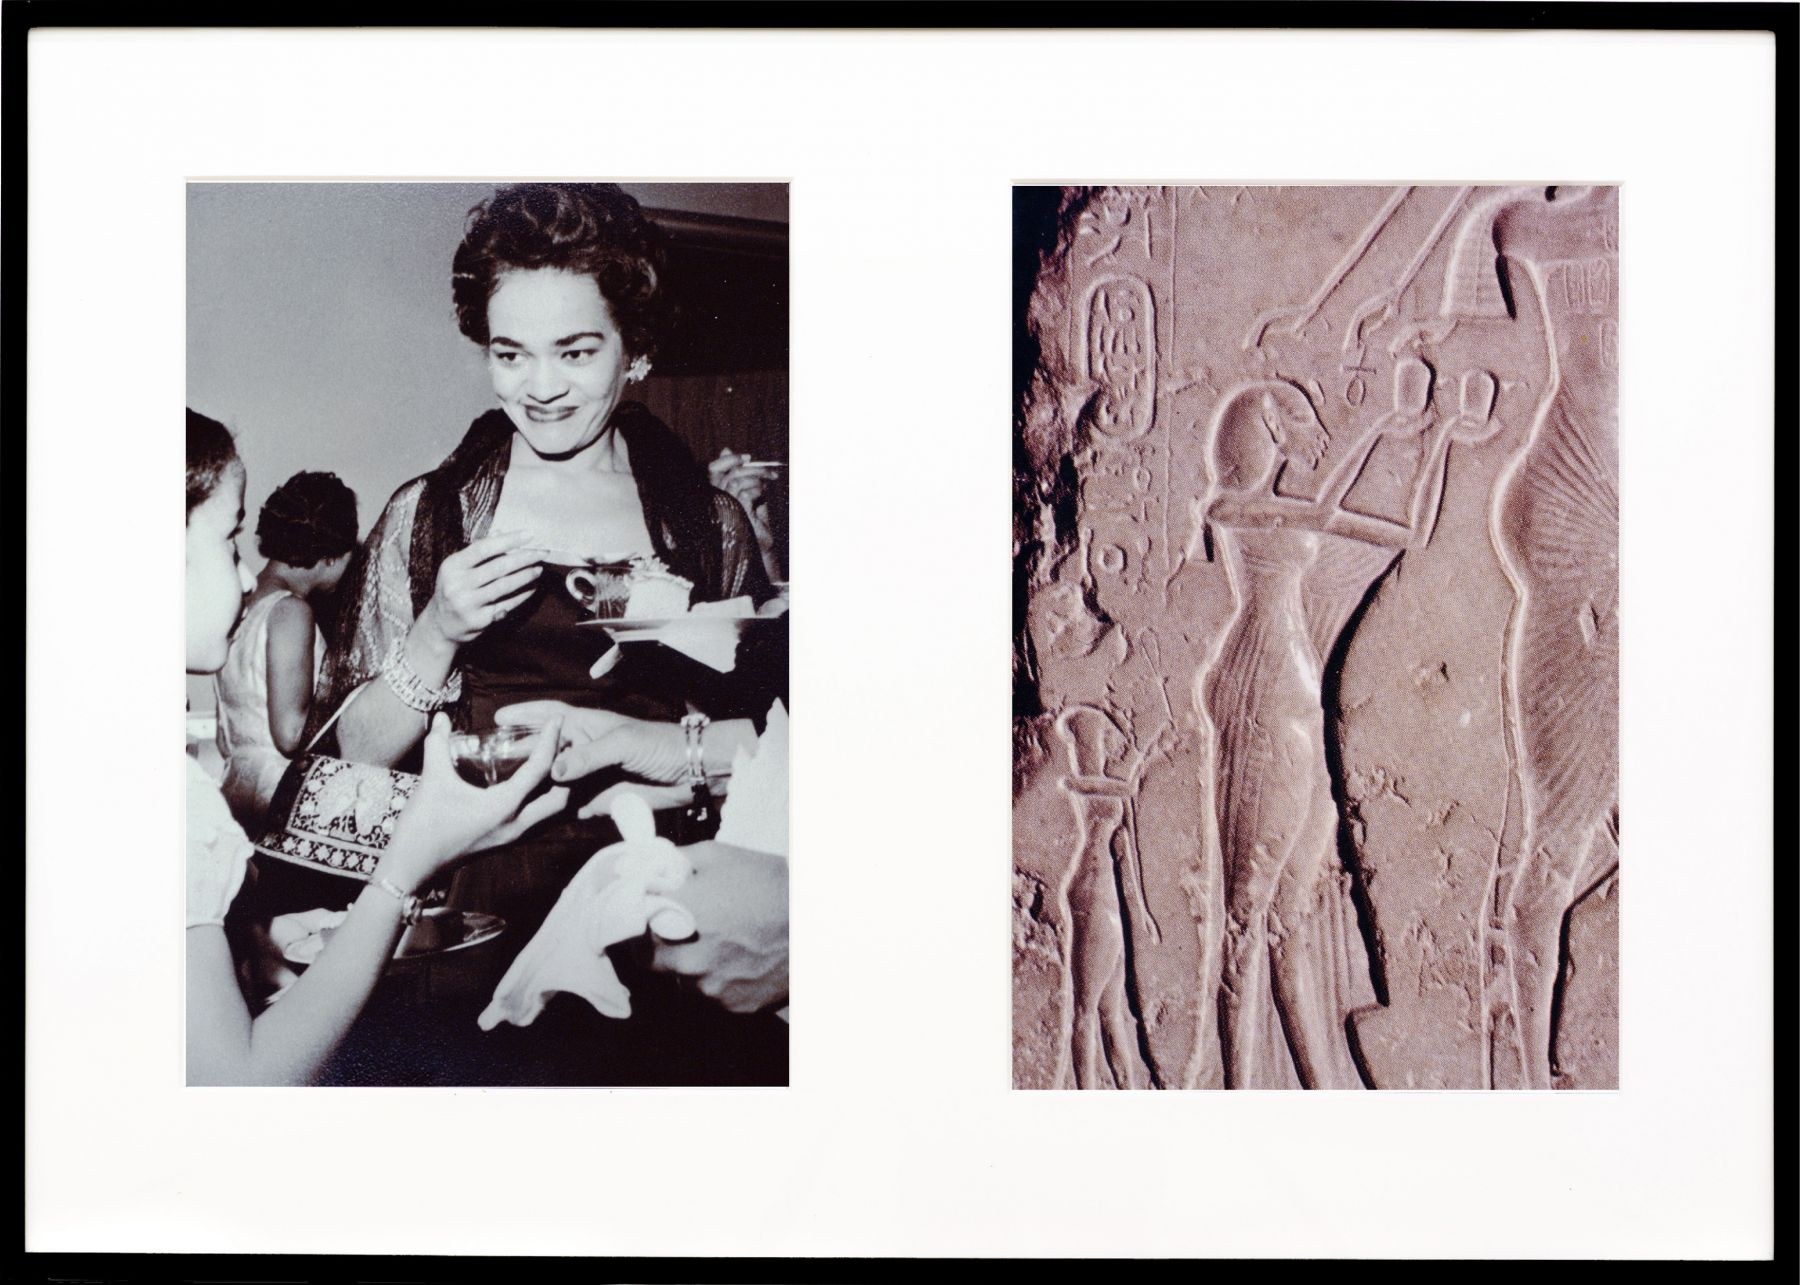 Miscegenated Family Album (Ceremonial Occasions II), L: Devonia attending a wedding; R: Nefertiti performing an Aten ritual, 1980/1994, Cibachrome print, 26h x 37w in (66.04h x 93.98w cm)